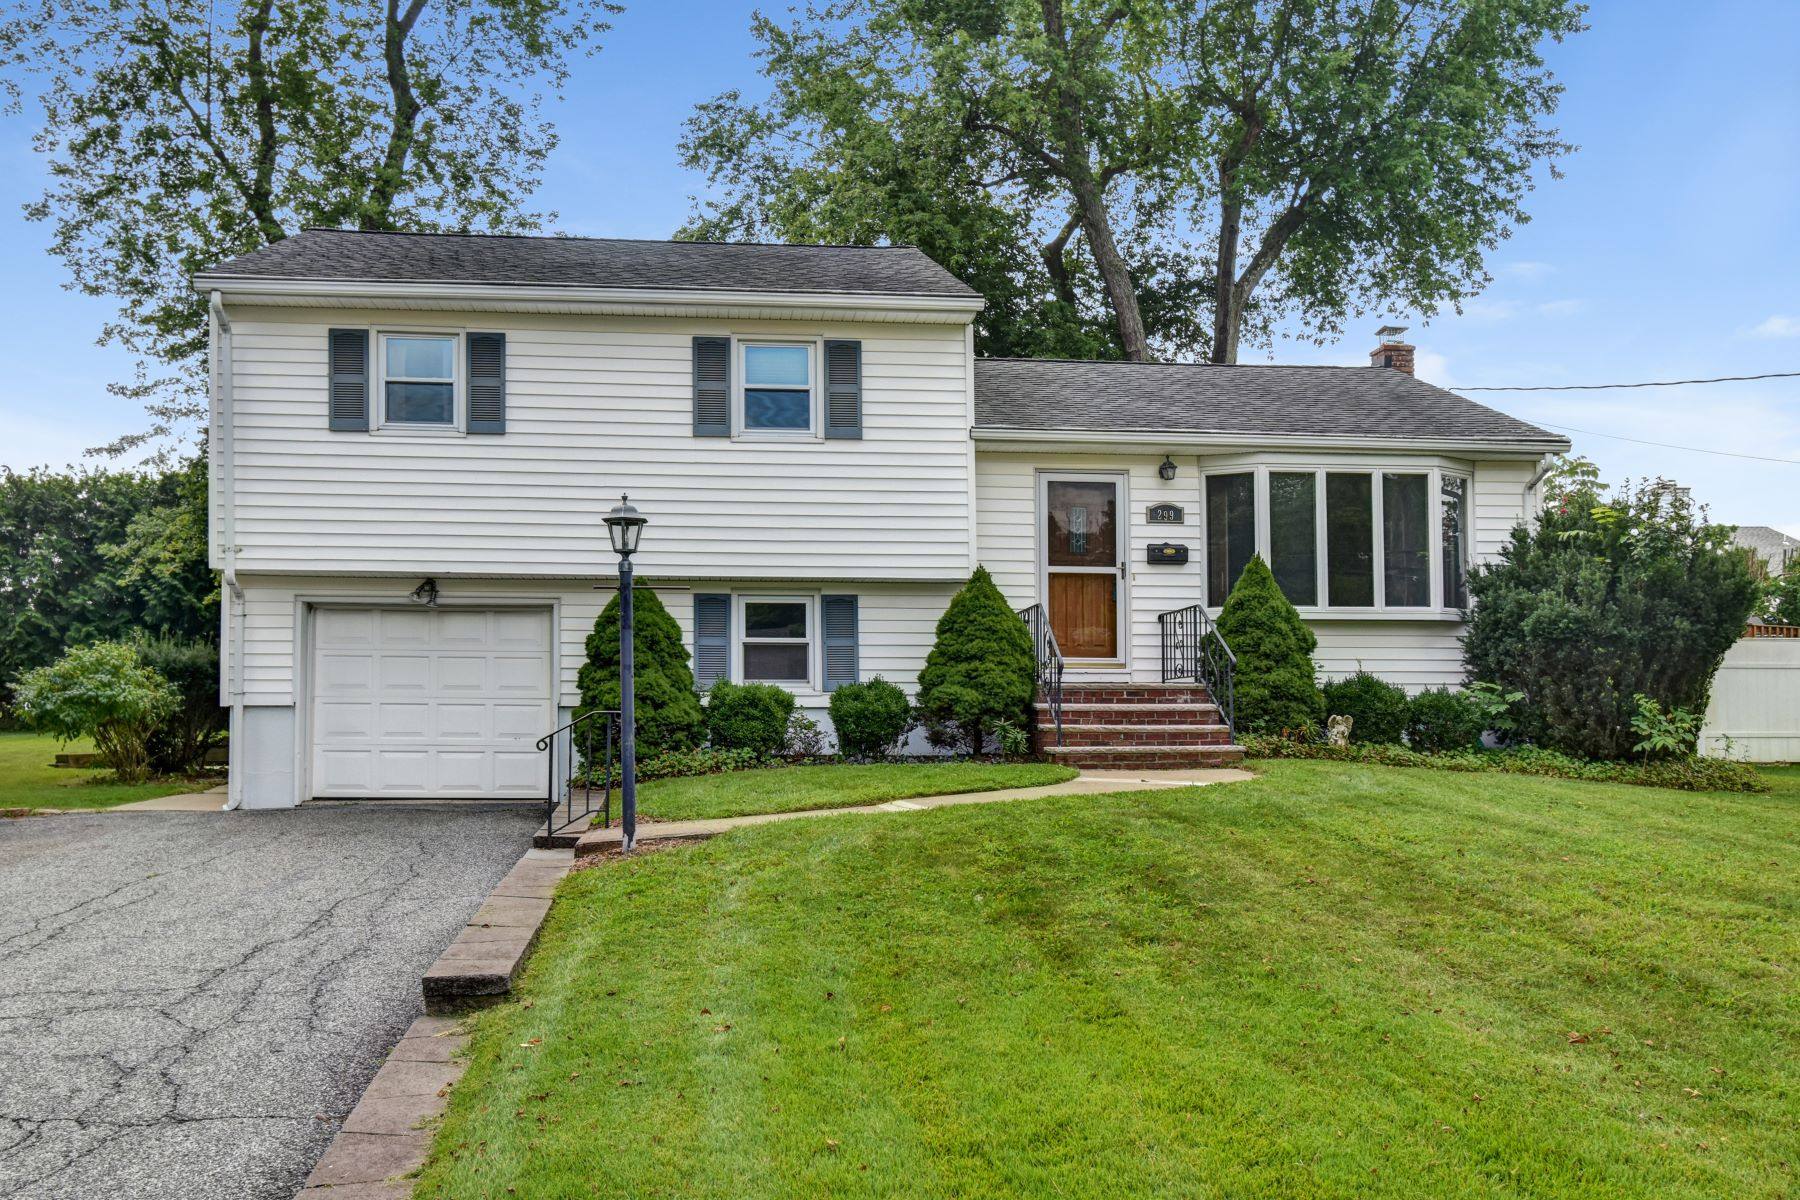 Single Family Homes for Sale at Split Level on Beautiful Lot 299 Garfield Street Berkeley Heights, New Jersey 07922 United States